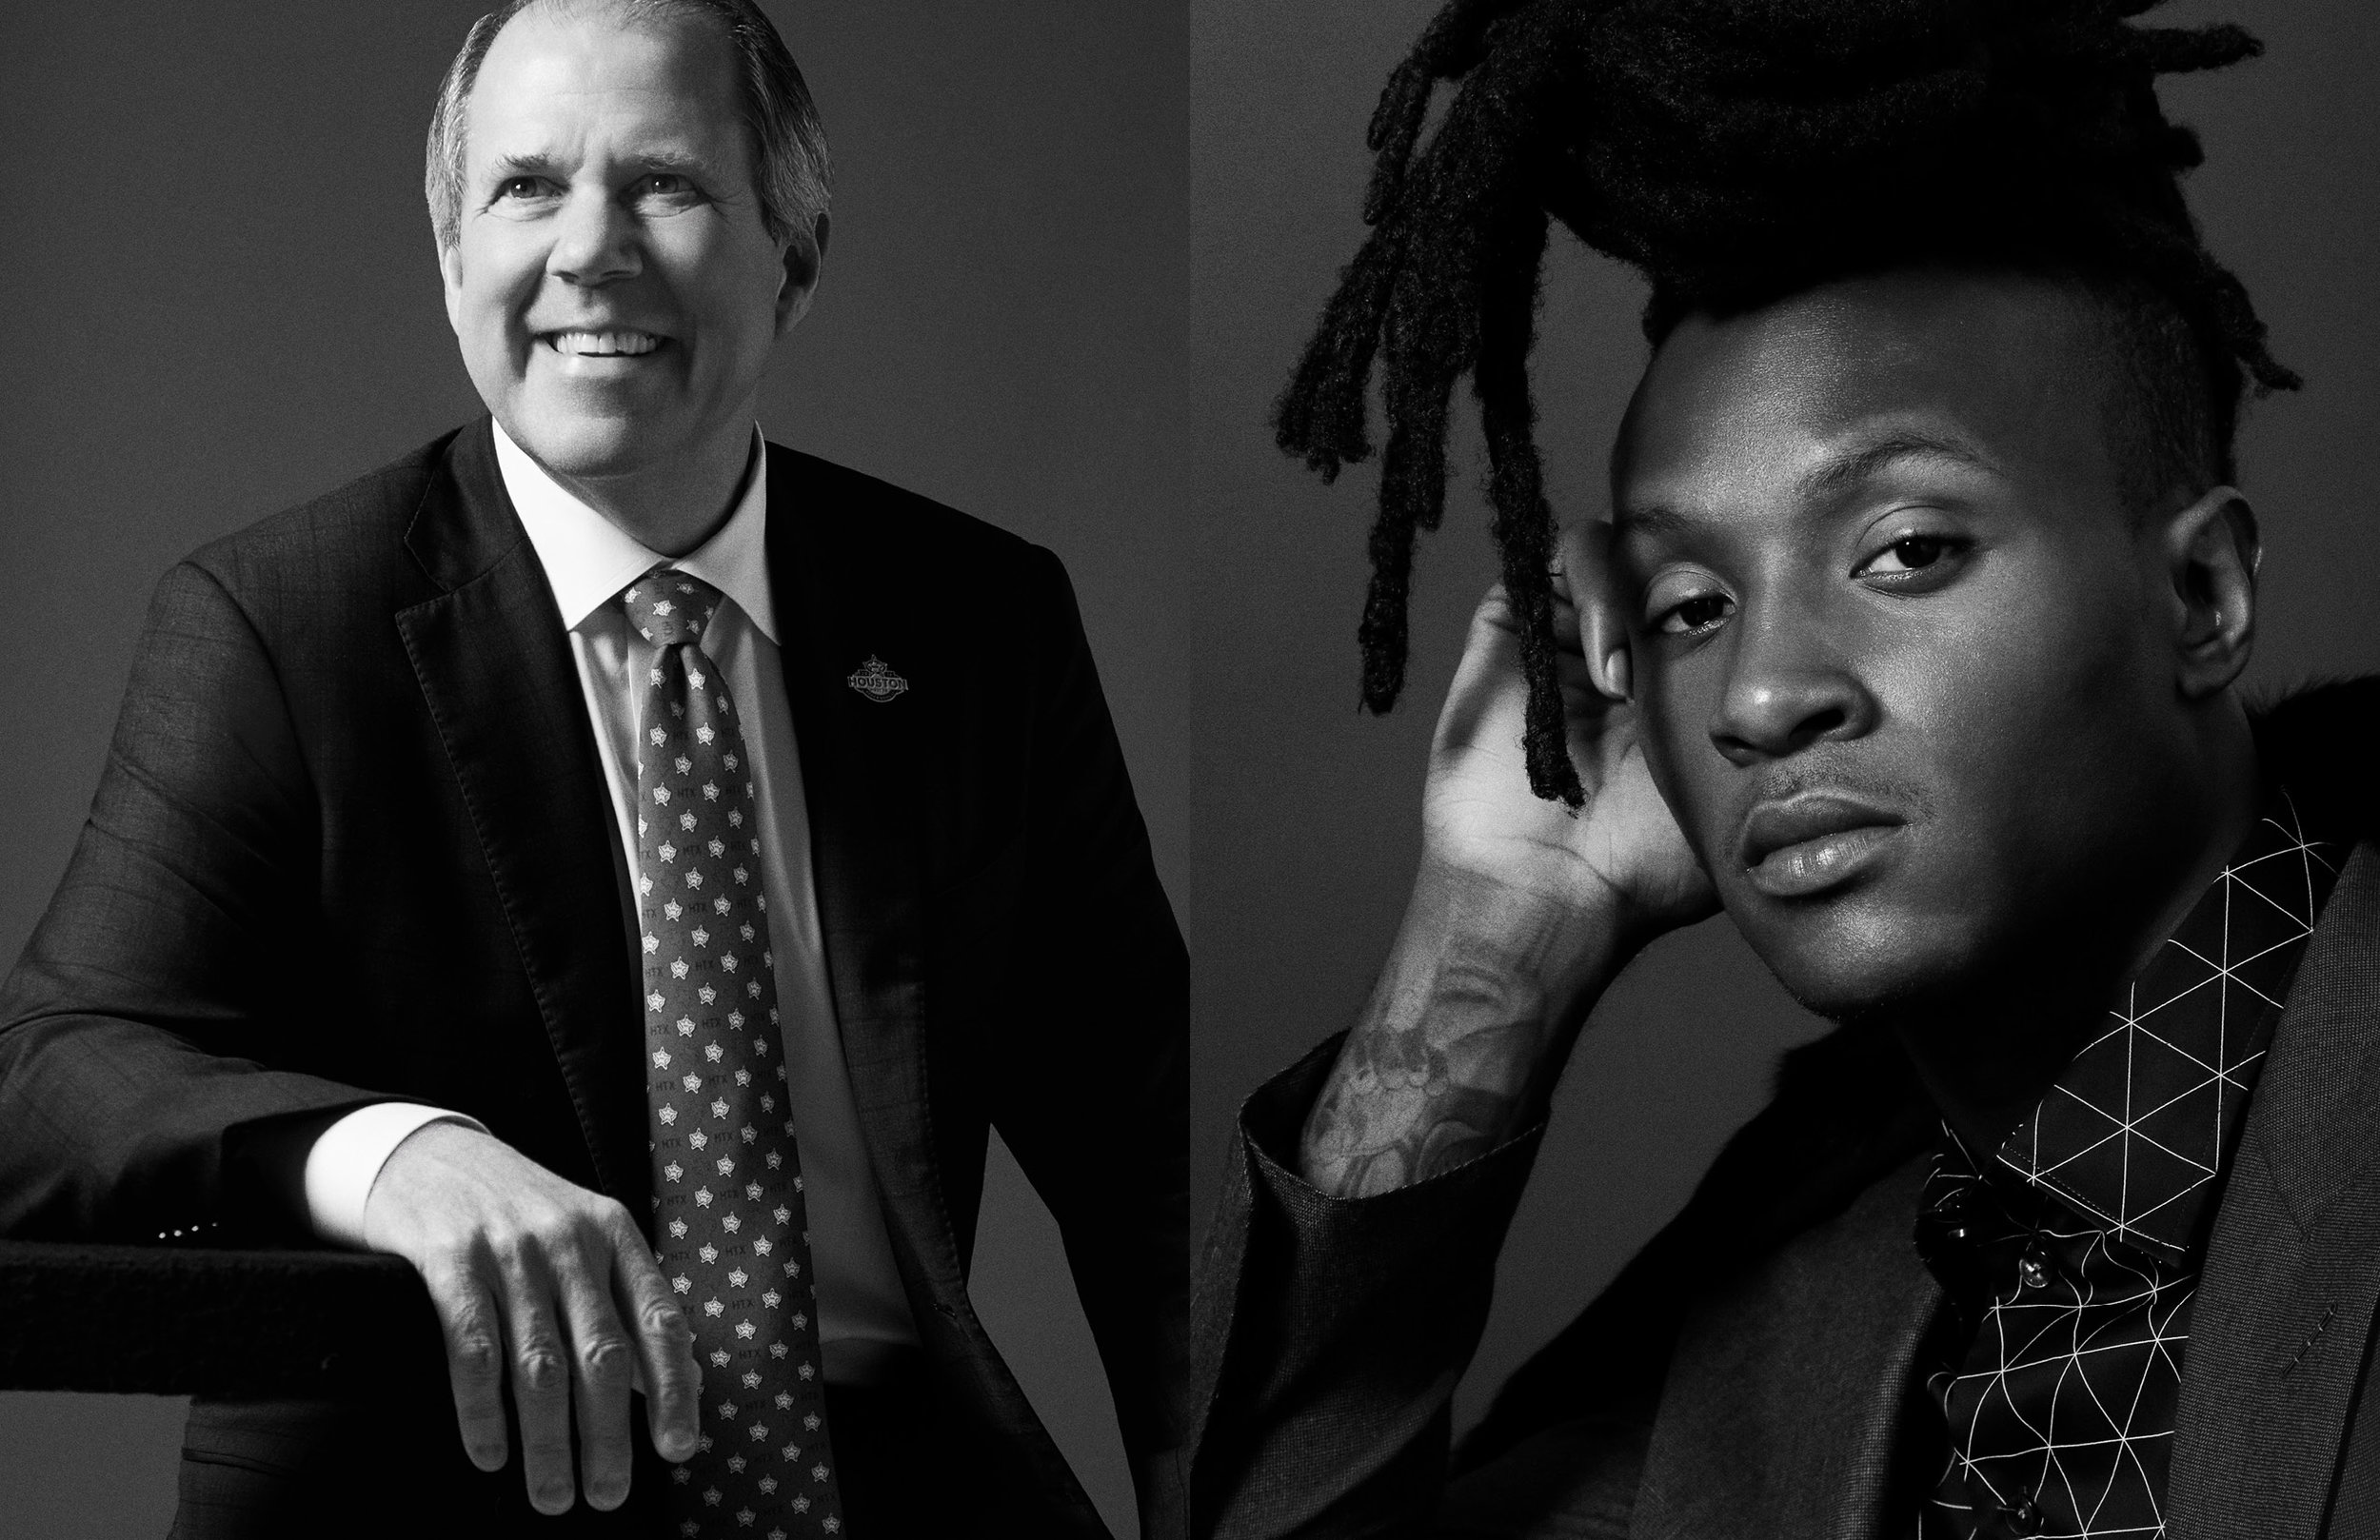 RIC CAMPO, CHAIRMAN OF THE HOUSTON SUPER BOWL HOST COMMITTEE & DEANDRE HOPKINS, WIDE RECEIVER FOR THE HOUSTON TEXANS